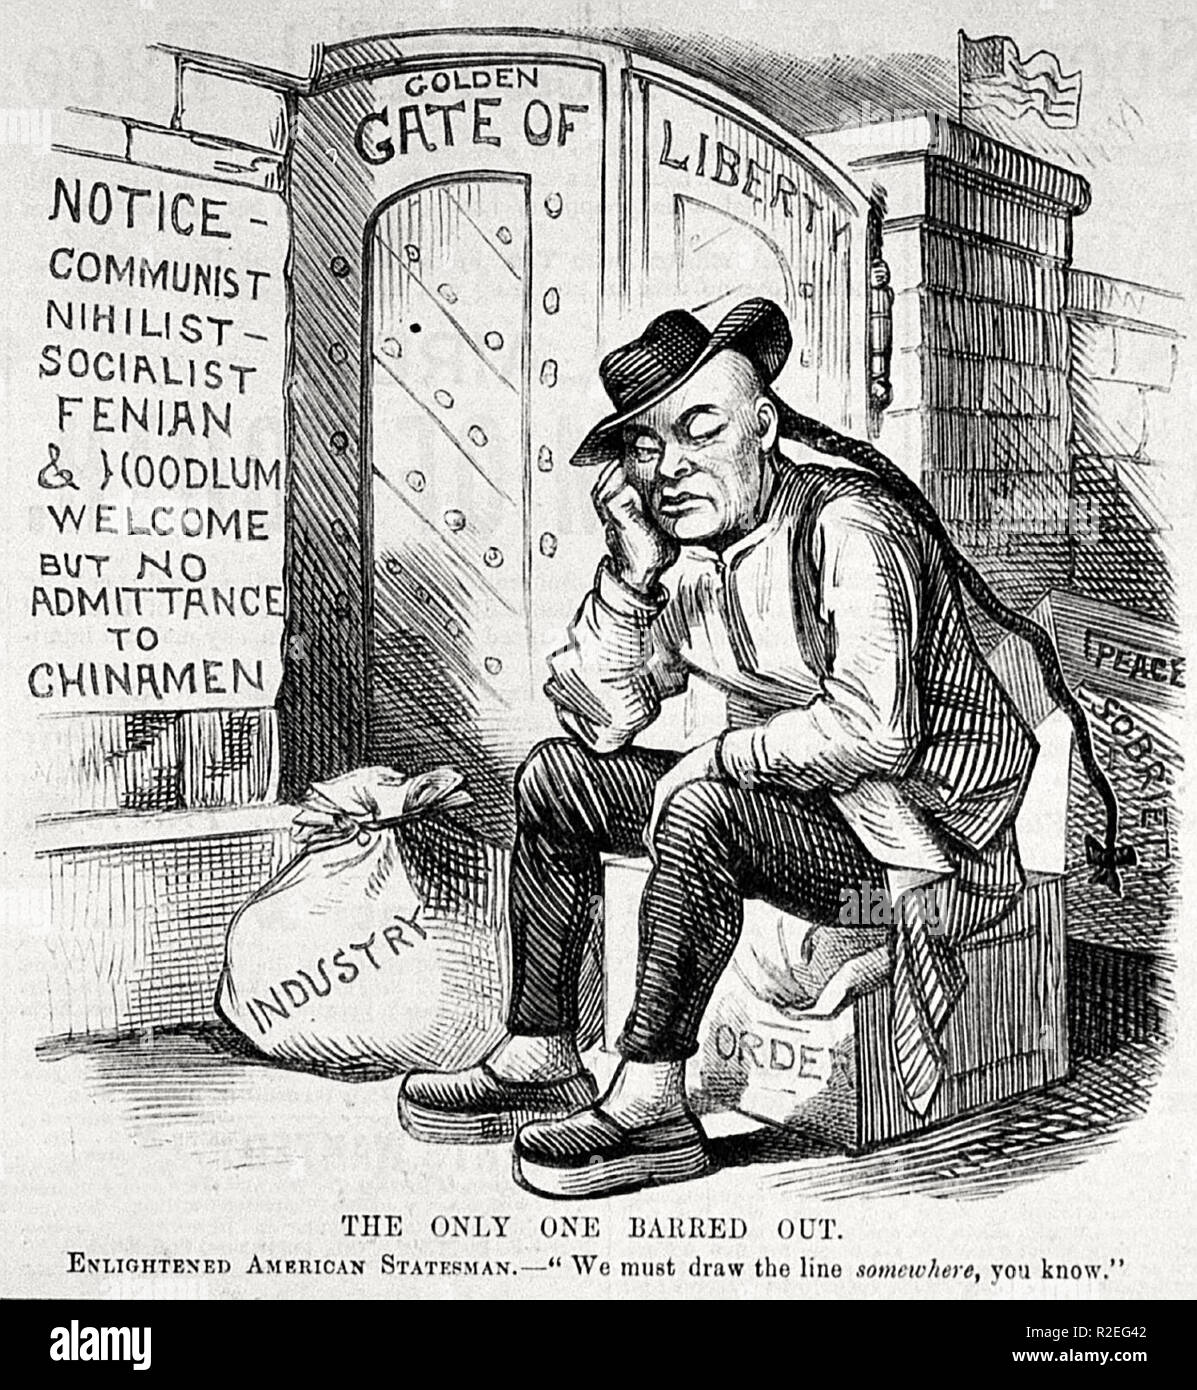 Editorial cartoon showing a Chinese man, surrounded by luggage labeled 'Industry', 'Order', 'Sobriety', and 'Peace', being excluded from entry to the 'Golden Gate of Liberty'. The sign next to the iron door reads, 'Notice—Communist, Nihilist, Socialist, Fenian & Hoodlum welcome. But no admittance to Chinamen.' At the bottom, the caption reads, 'THE ONLY ONE BARRED OUT. Enlightened American Statesman—'We must draw the line somewhere, you know.'' 1882 - Stock Image